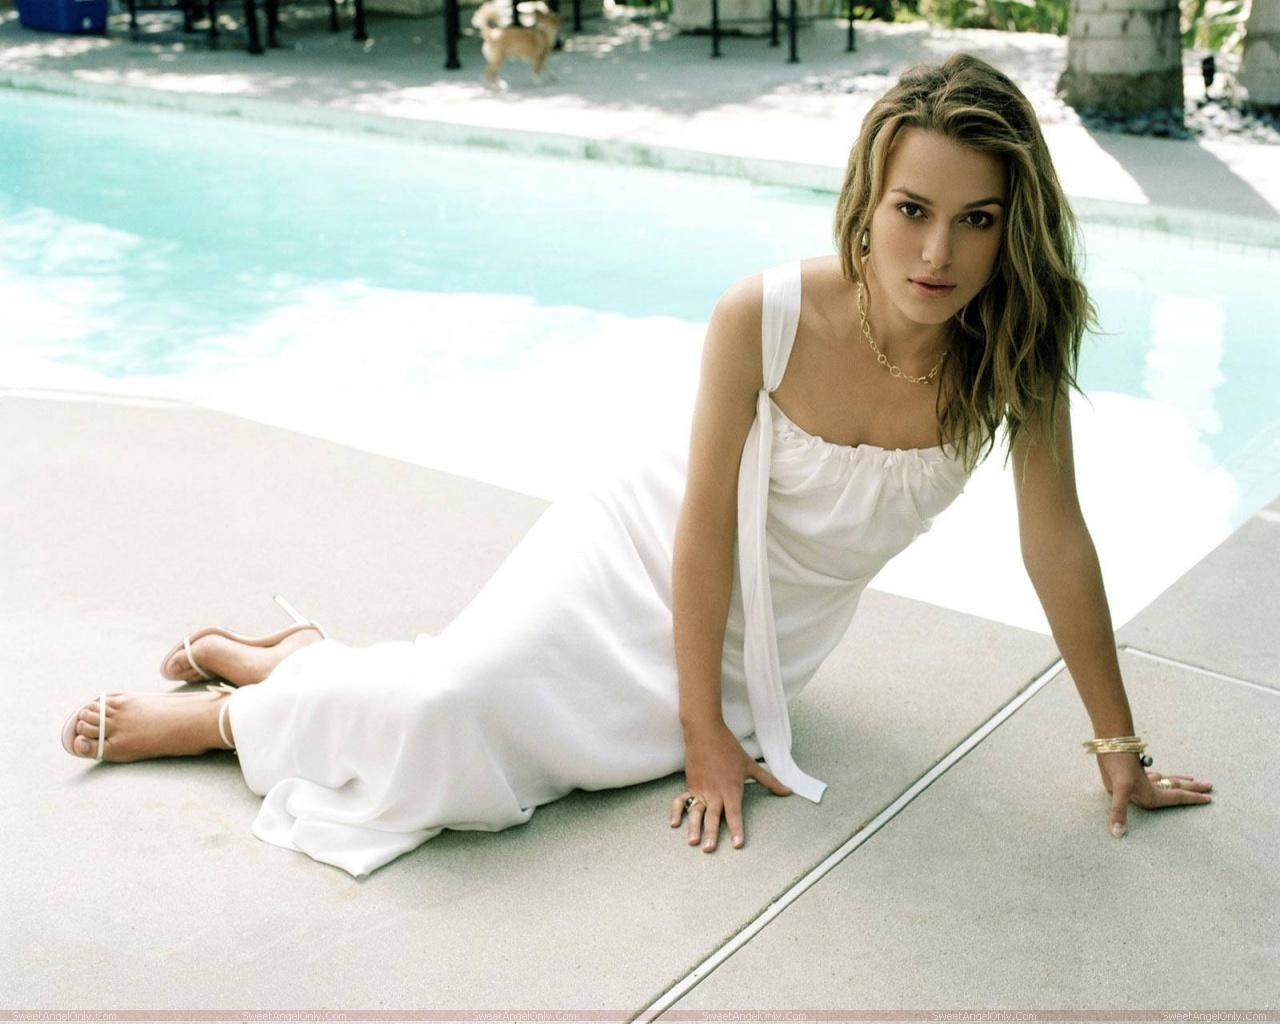 http://1.bp.blogspot.com/-Nlmr1d6-GCg/TXhuv0ODTtI/AAAAAAAAFPI/u_rluRuXPes/s1600/actress_keira_knightley_hot_wallpaper_sweetangelonly_20.jpg